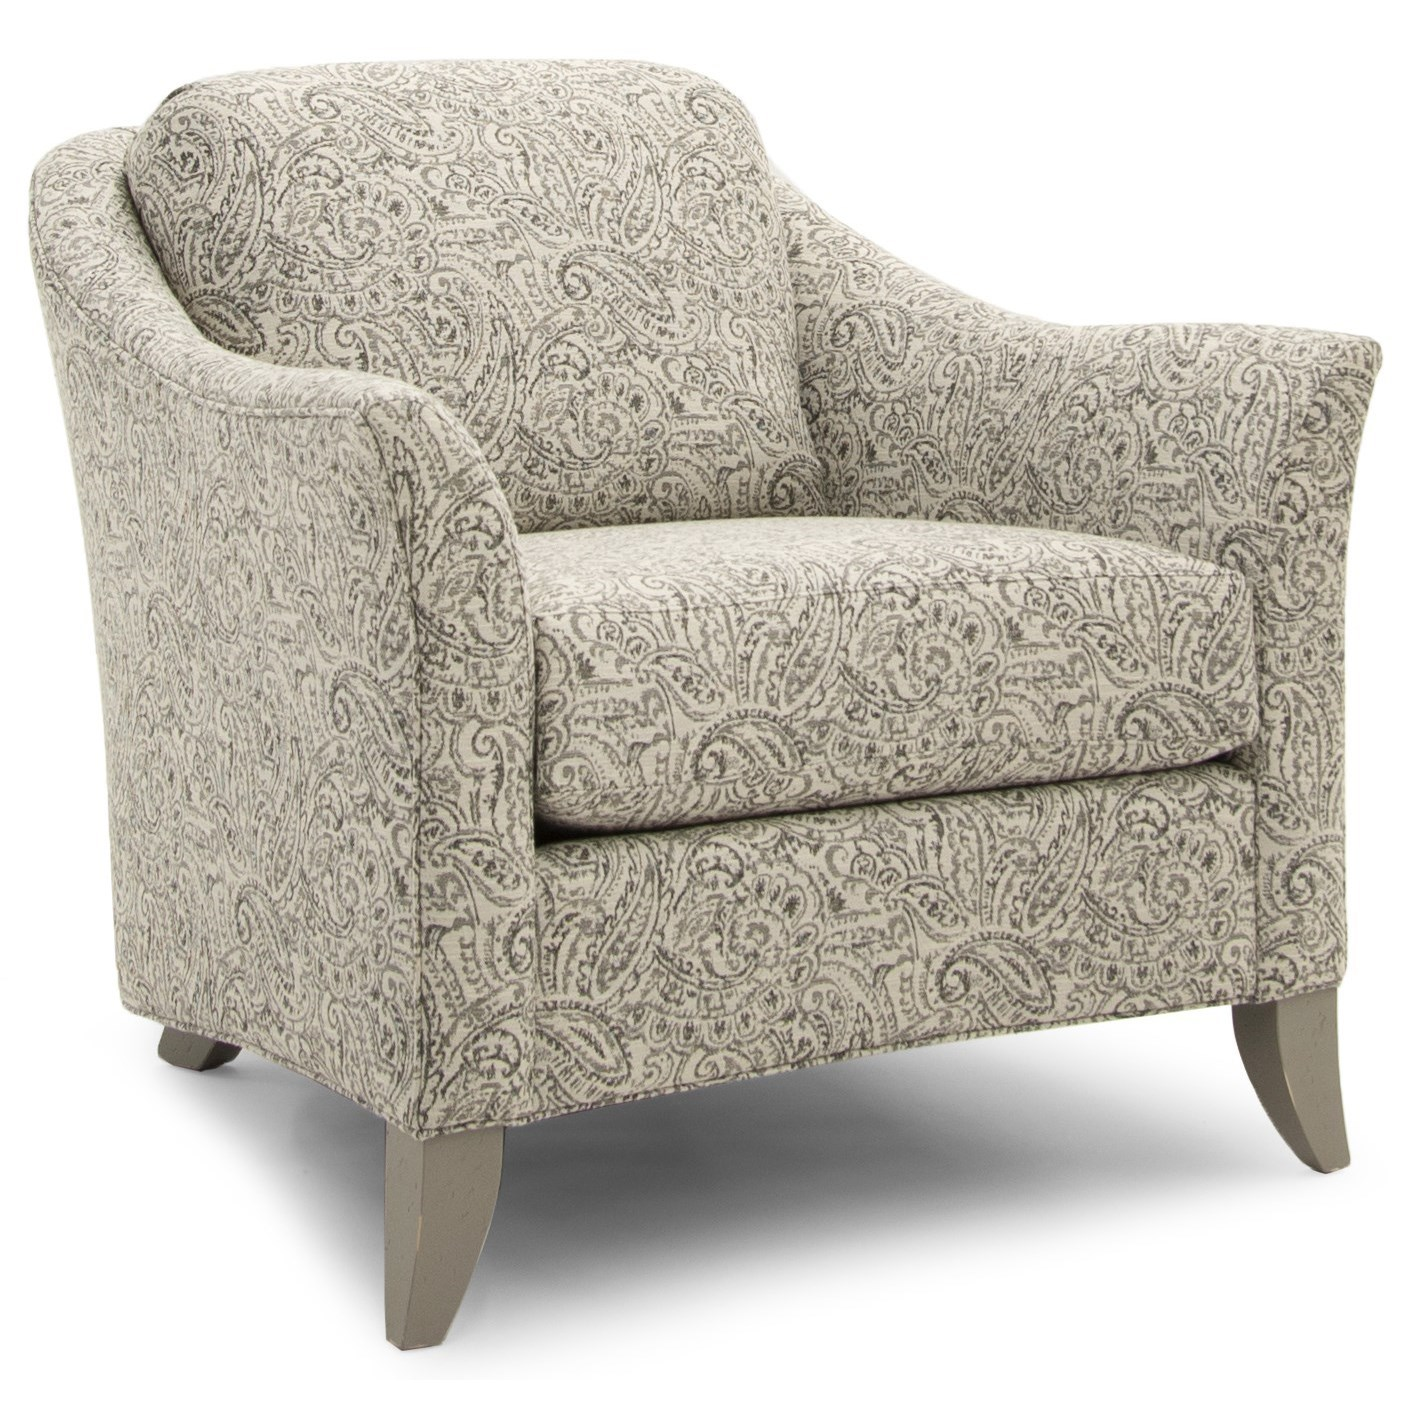 256 Chair by Smith Brothers at Turk Furniture